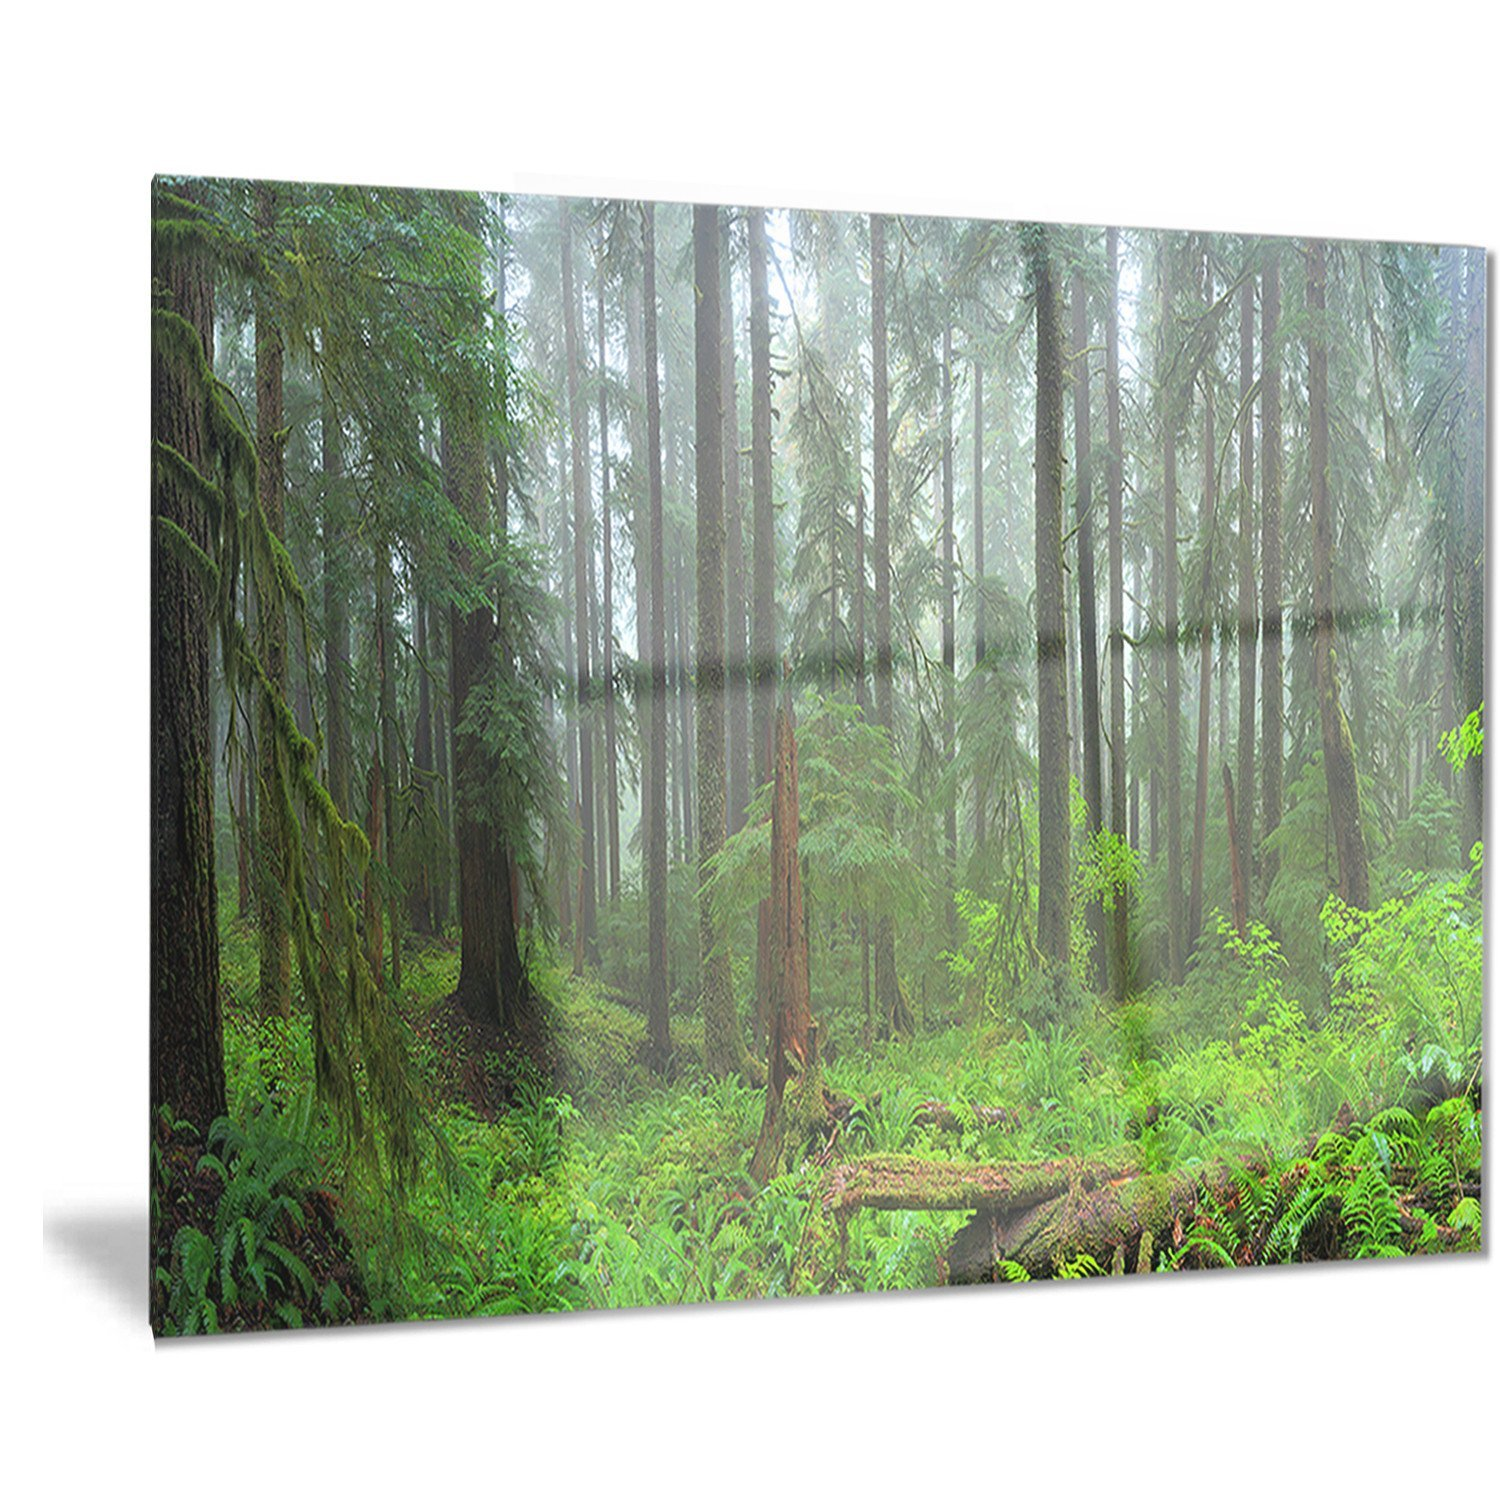 Designart HOH Rain Forest-Landscape Photography Metal Wall Art-MT8332-60x32-5 Panels 32 H/ x/ 60 W/ x/ 1 D 5PD 32/'/' H/ x/ 60/'/' W/ x/ 1/'/' D 5PD MT8332-373